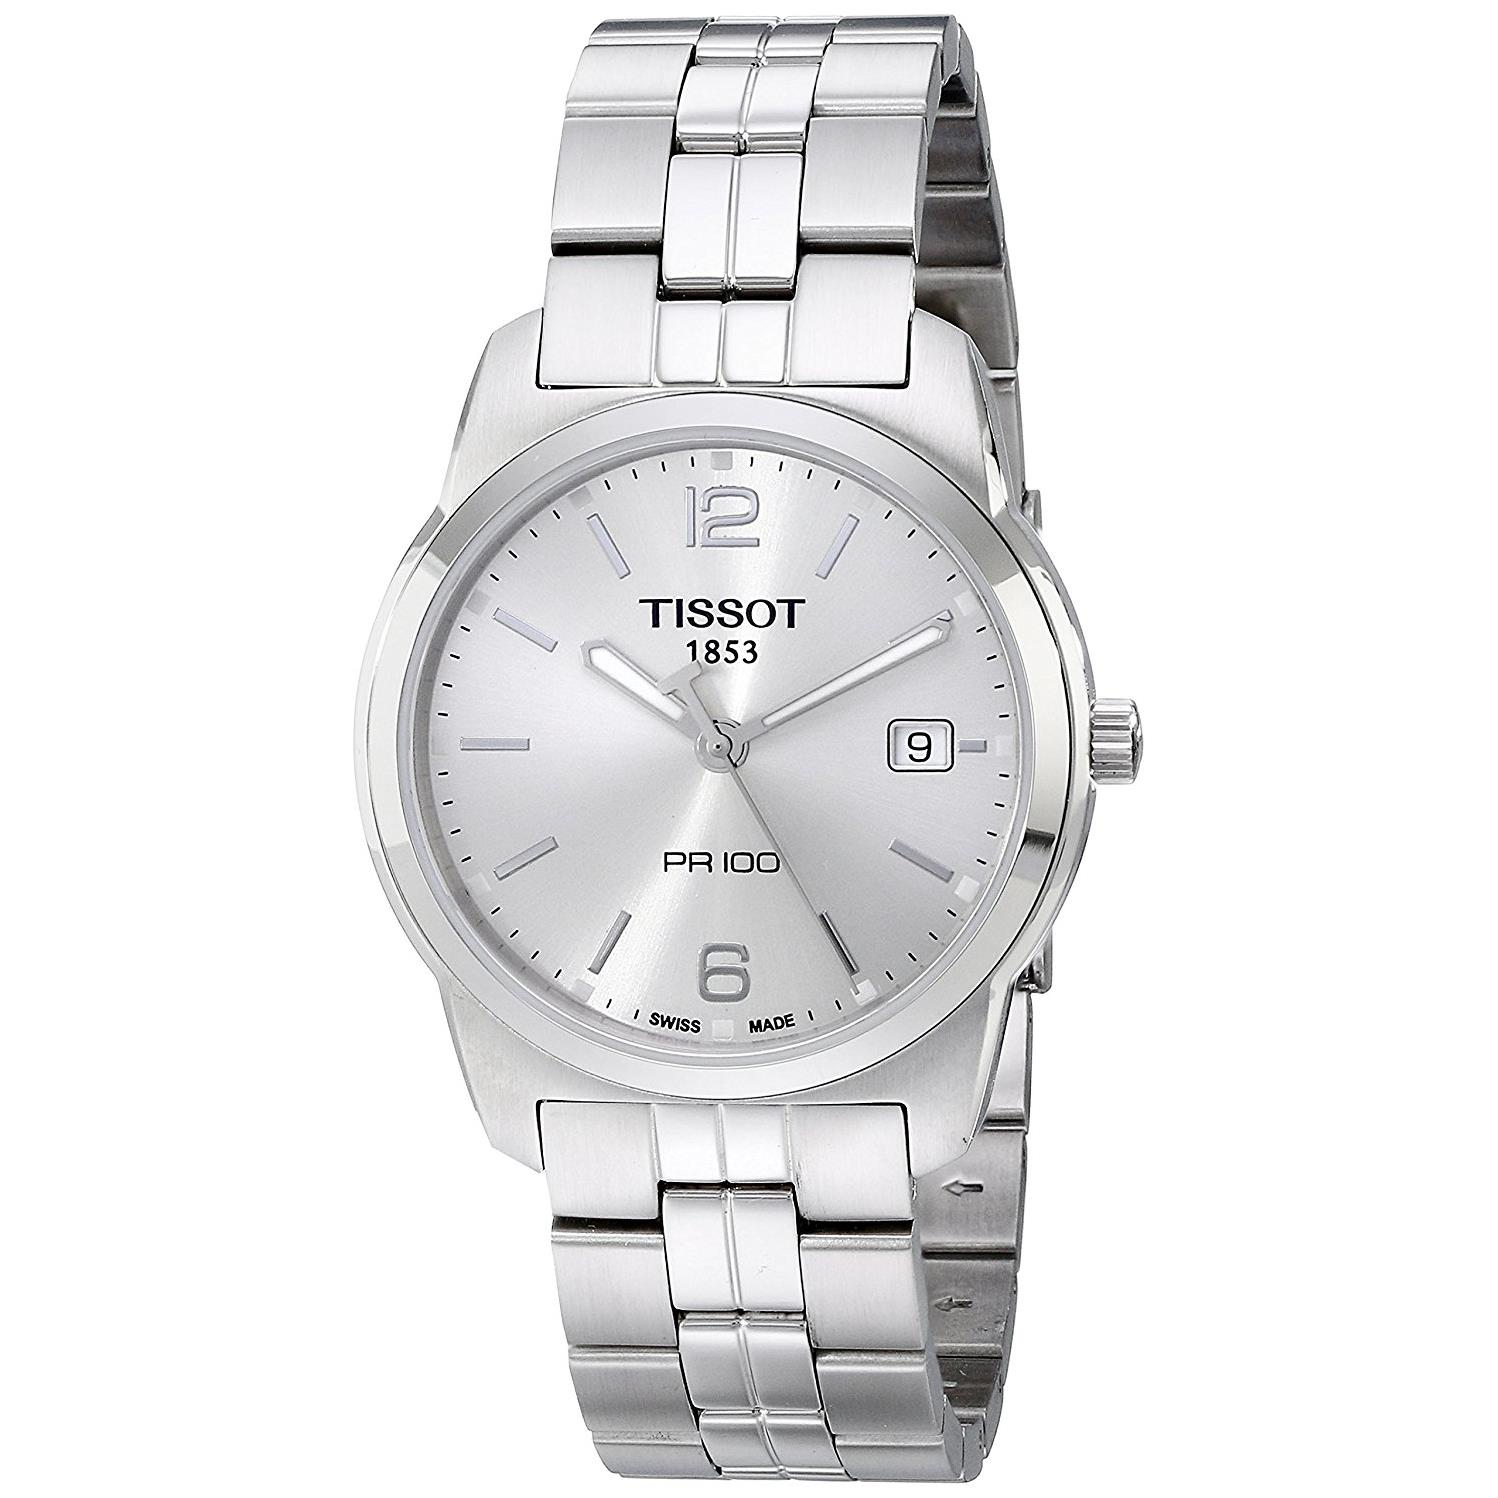 Tissot Men's 39mm Steel Bracelet & Case Swiss Quartz Silv...